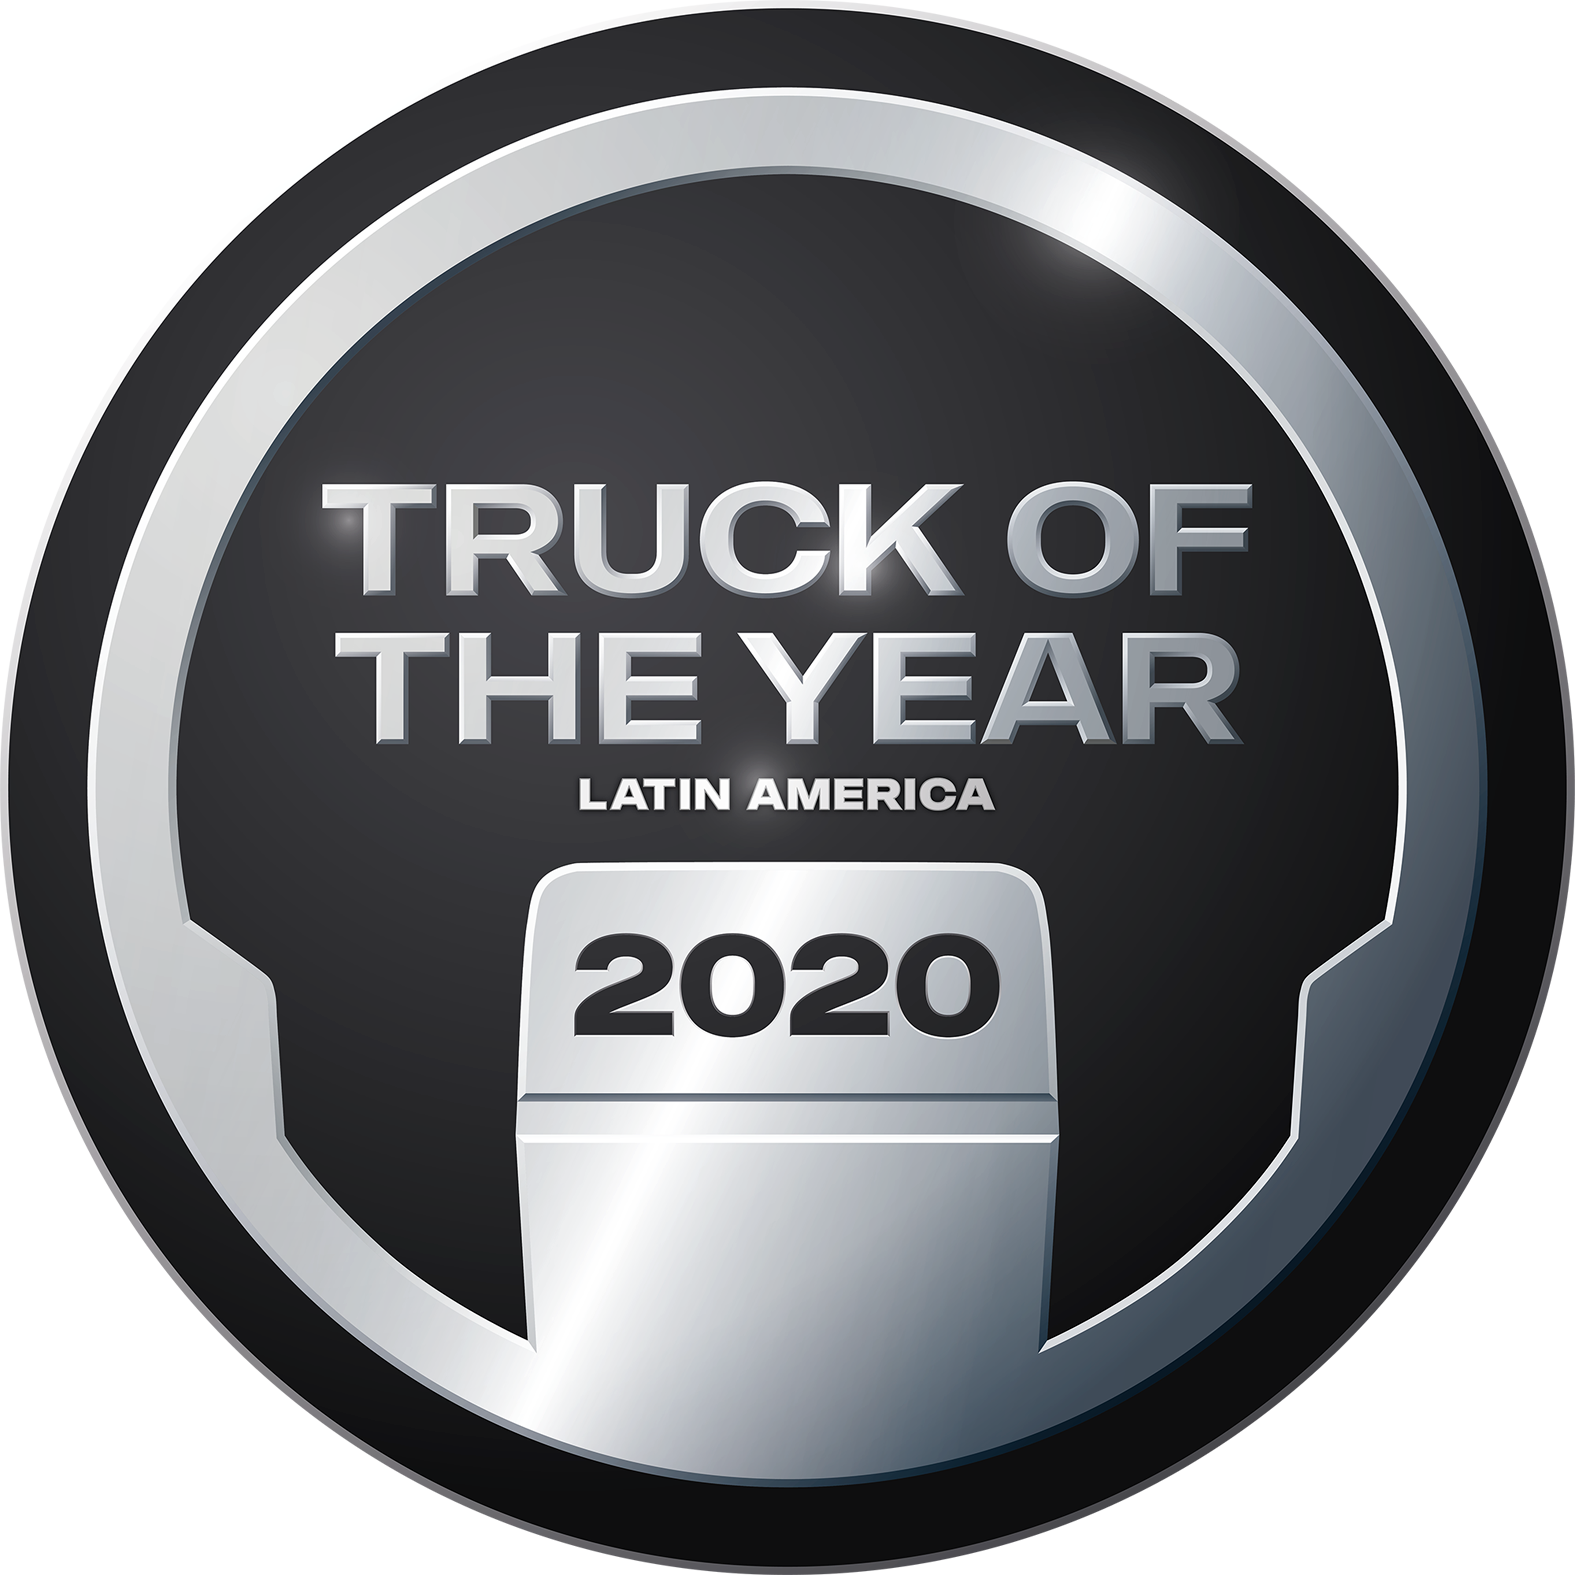 scania-truck-of-the-year-latin-amerika-2020.png